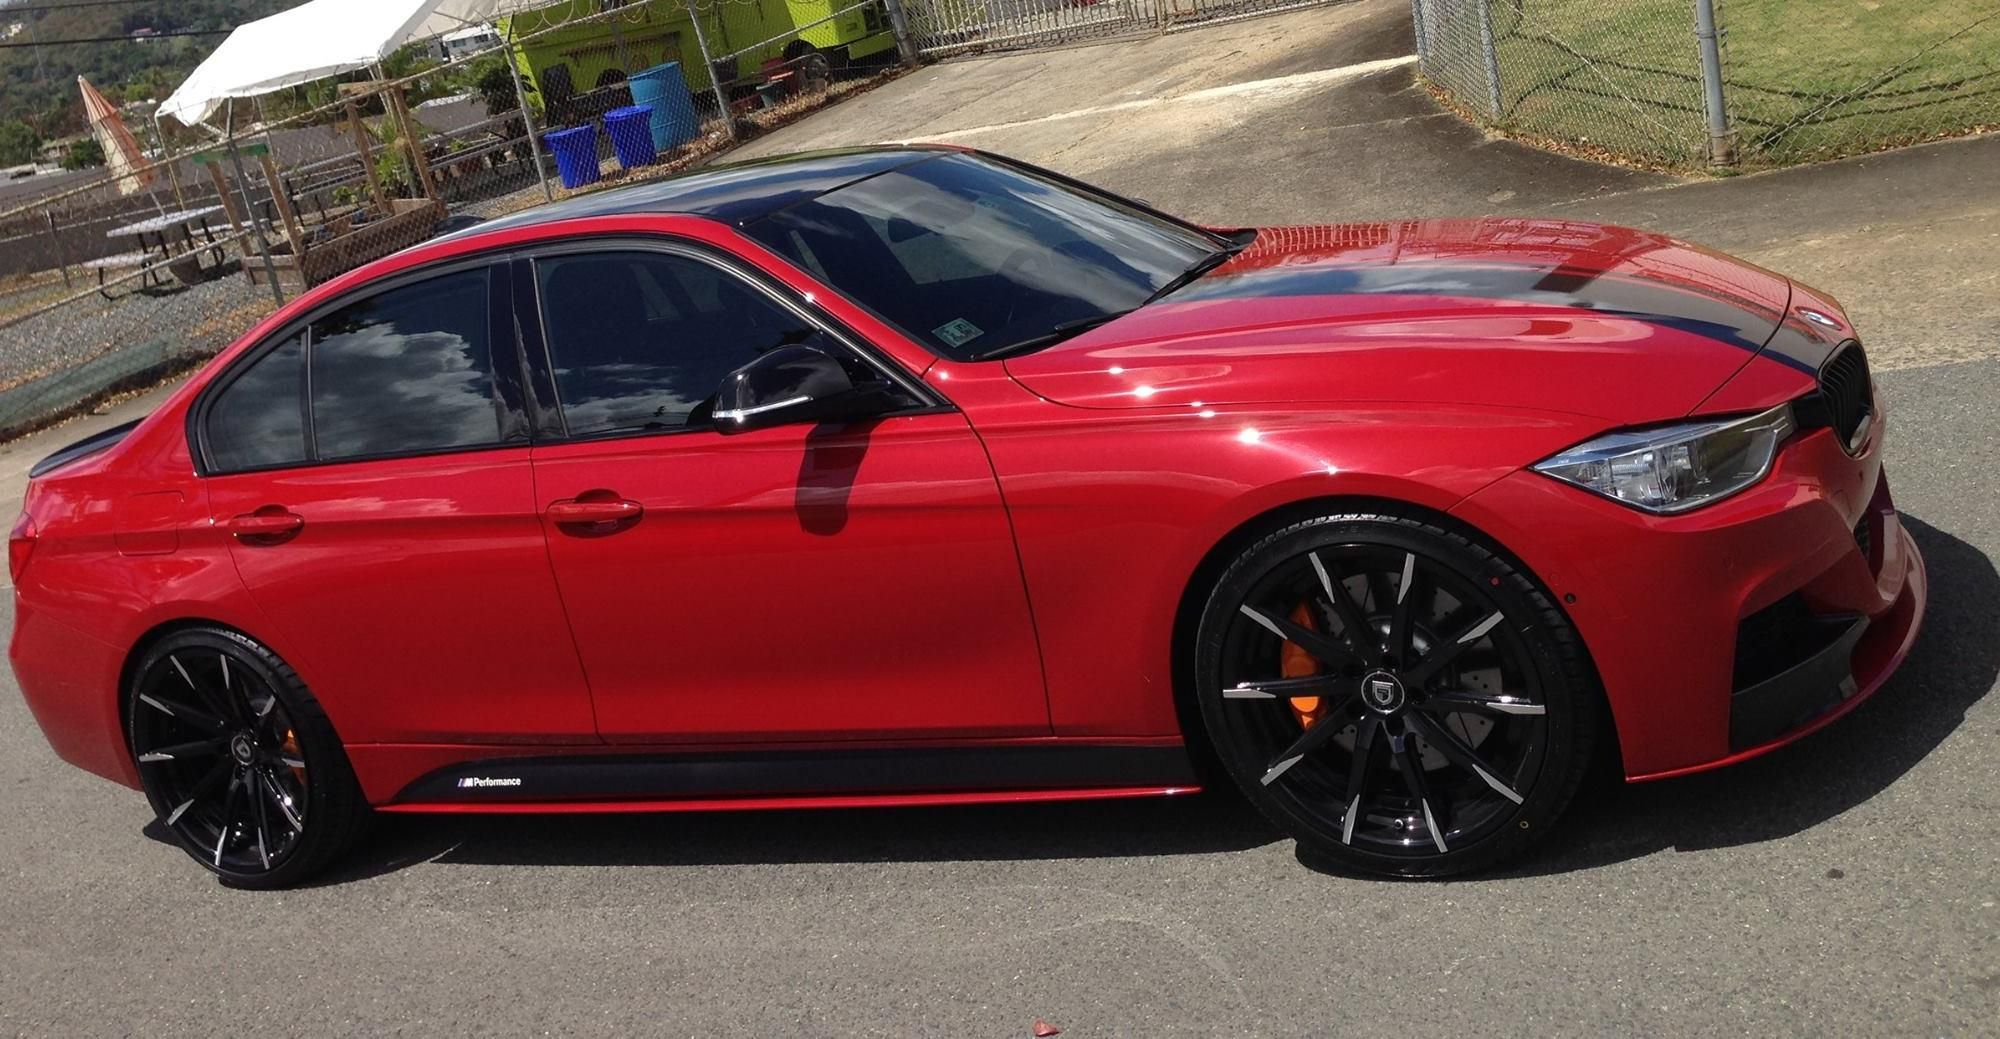 Bmw M6 Gran Coupe 2019 >> Red Bmw 3 Series Black Rims | www.pixshark.com - Images Galleries With A Bite!